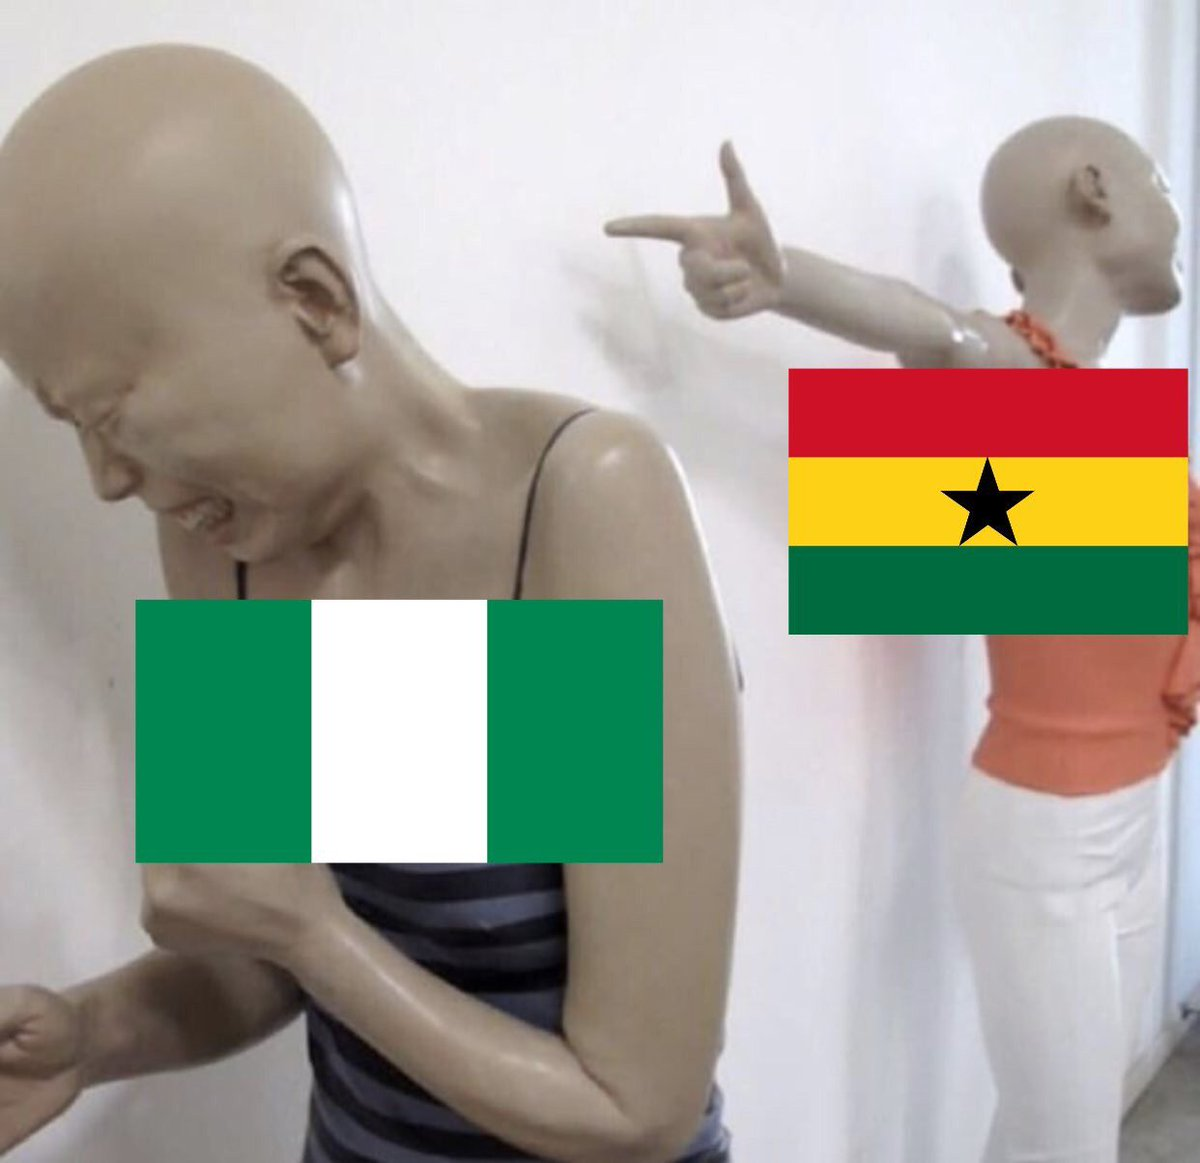 Current FIFA Rankings: Ghana - 45 | Nigeria - 49  Even though Ghana didn&#39;t make it to the World Cup, Ghana is still ranked higher than NIgeria.  All the Mediocre Eagles of Nigeria did at the World Cup was dance to &#39;Assurance&#39;. <br>http://pic.twitter.com/QlHi5VwvfY